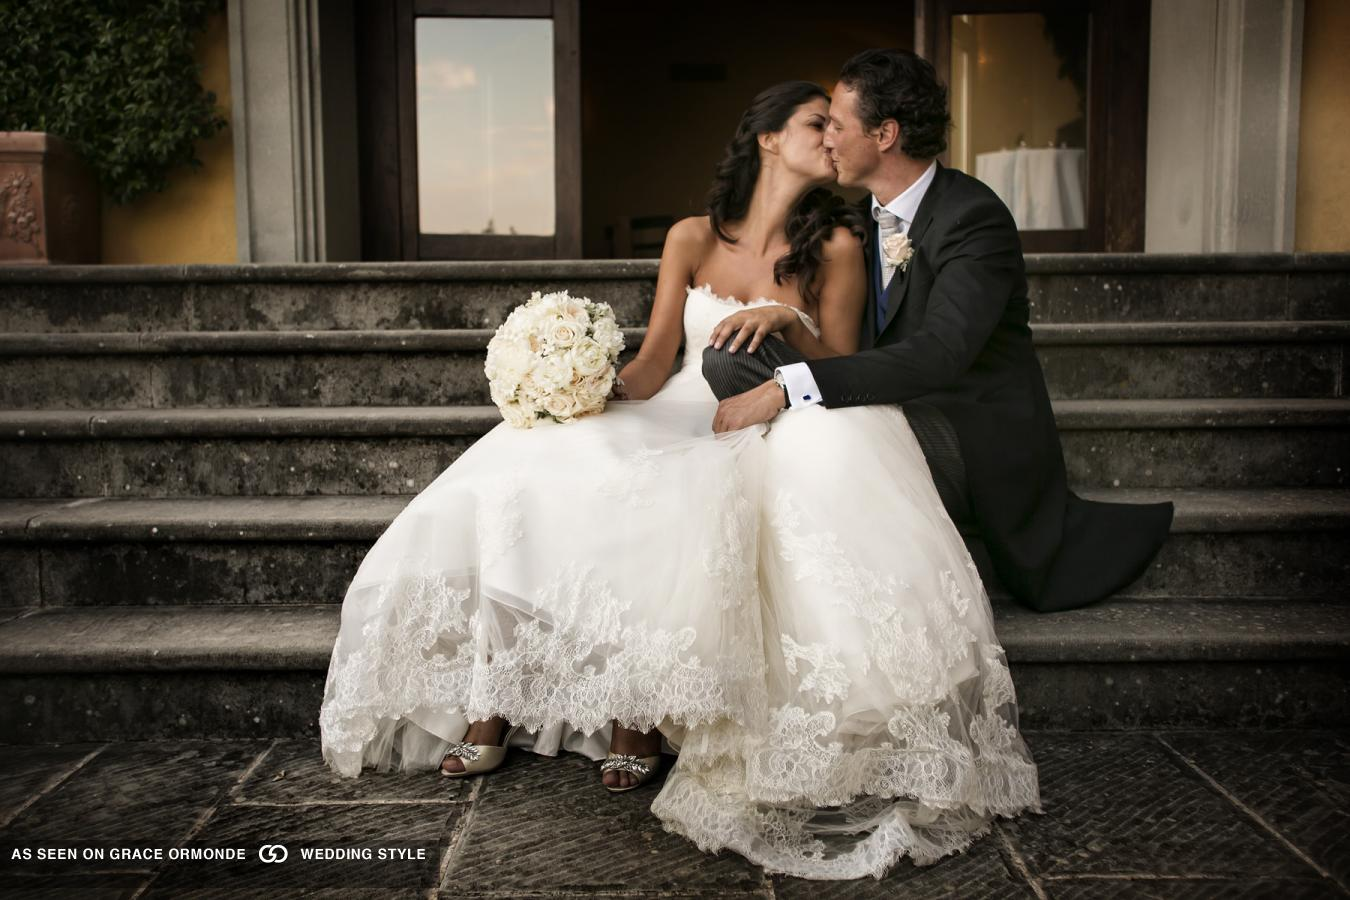 david-bastianoni-wedding-2015-15_0 - 5 :: Grace Ormonde :: Luxury wedding photography - 4 :: david-bastianoni-wedding-2015-15_0 - 5